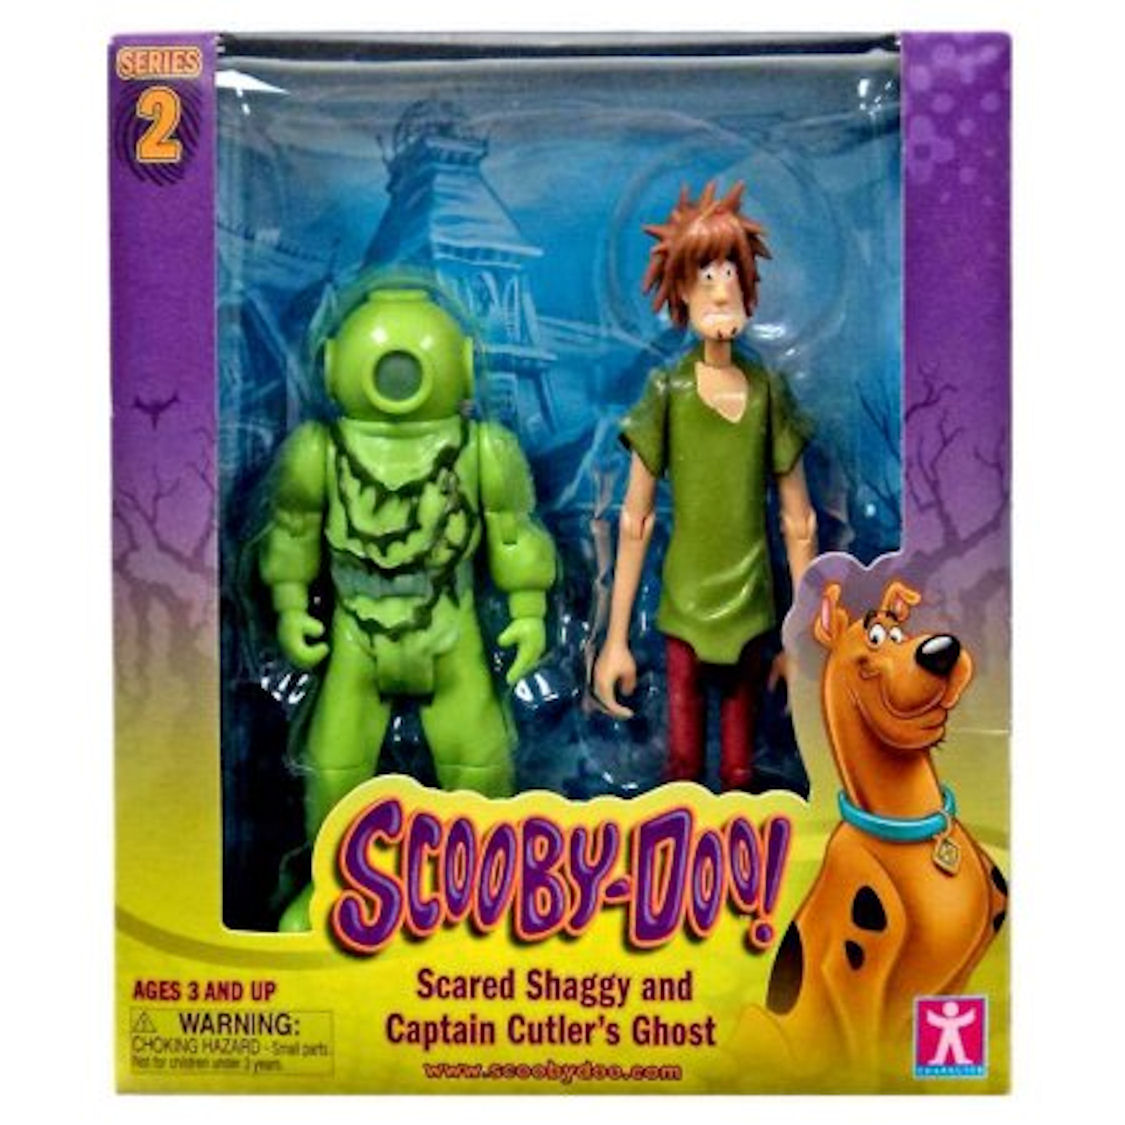 Scooby Doo Series 2 Scared Shaggy and Captain Cutler's Ghost Action Figures